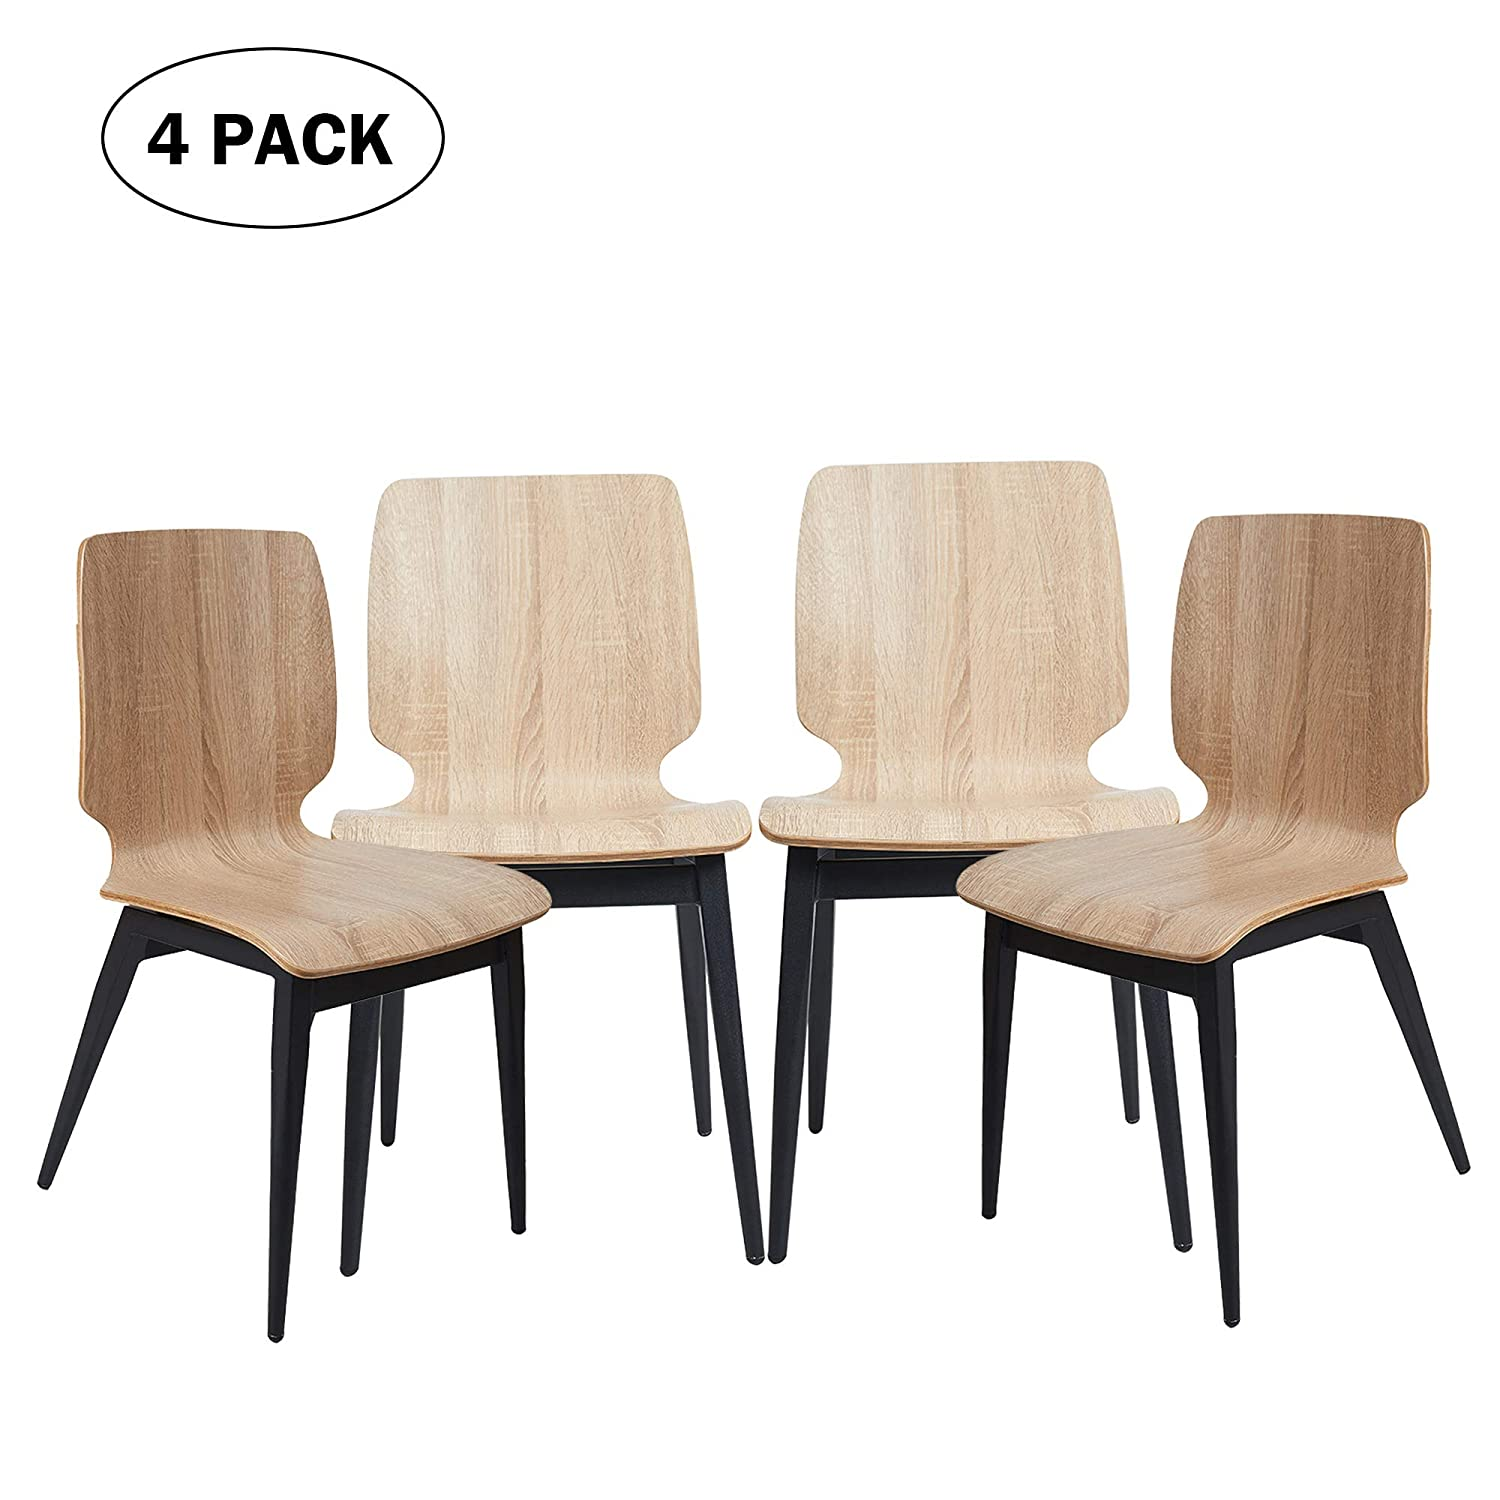 Prime 4 Pack Kitchen Dining Chairs With Bentwood Seat And Metal Legs Indoor Outdoor Side Chair For Cafe Bistro And Restaurant Ergonomic Design Natural Machost Co Dining Chair Design Ideas Machostcouk